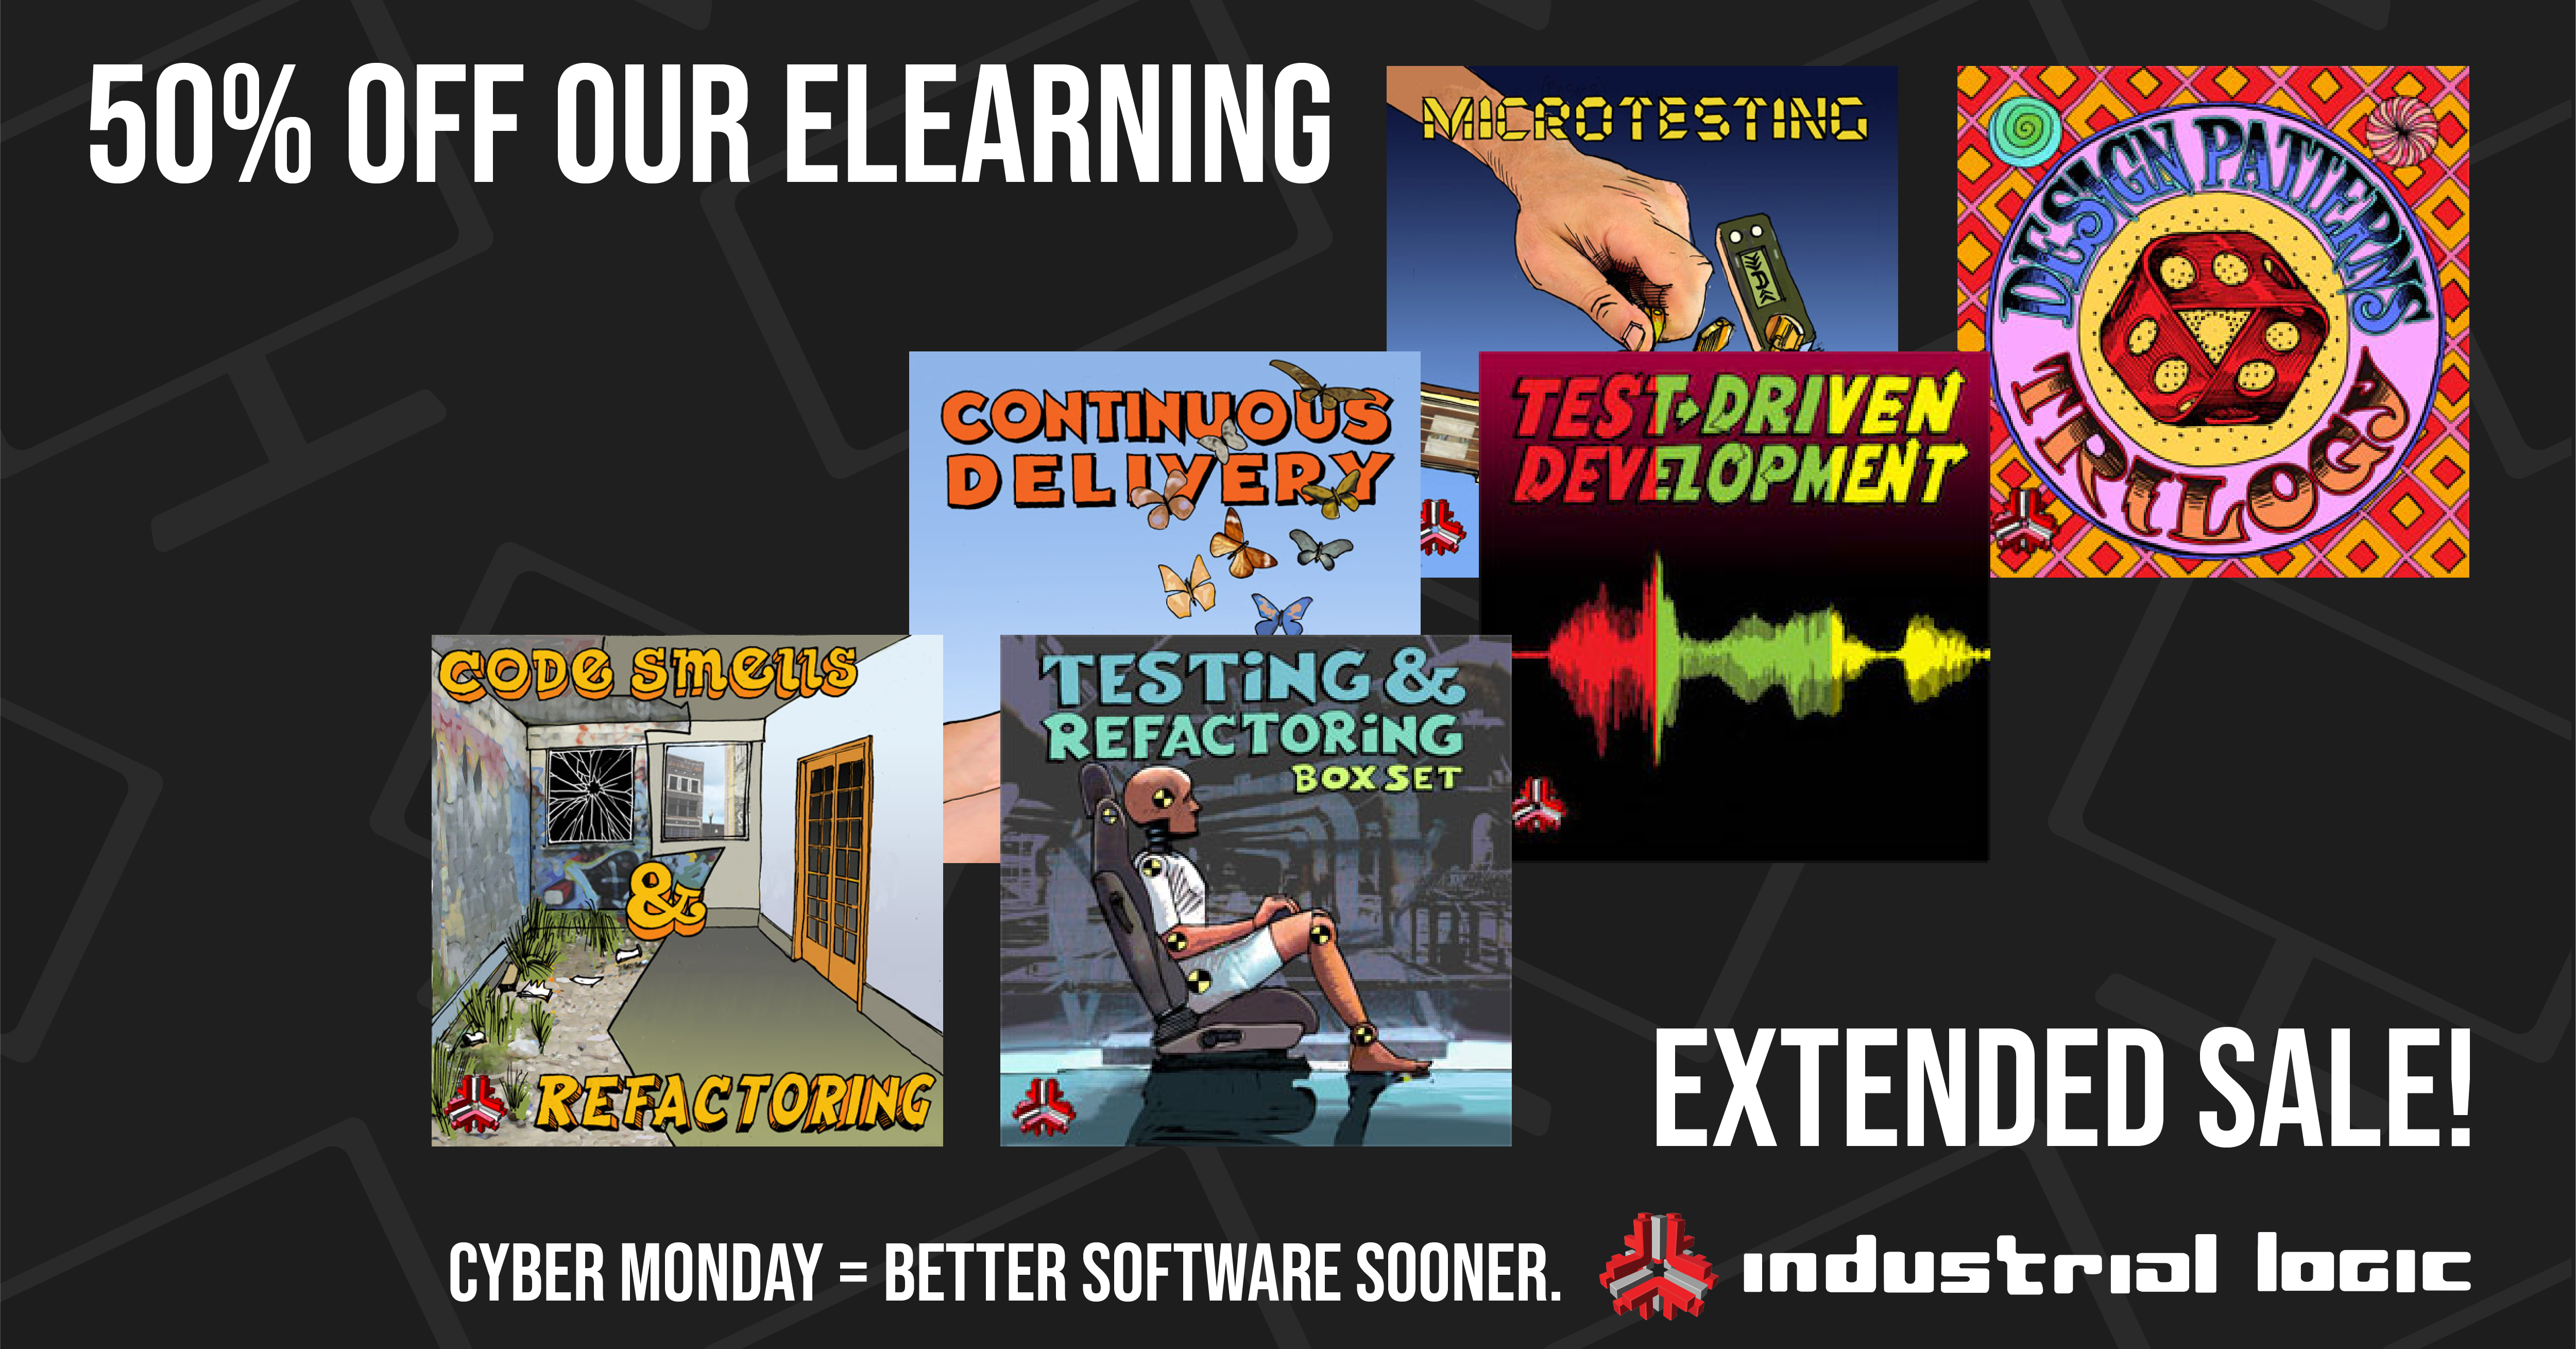 eLearning CyberMonday Sale Extended